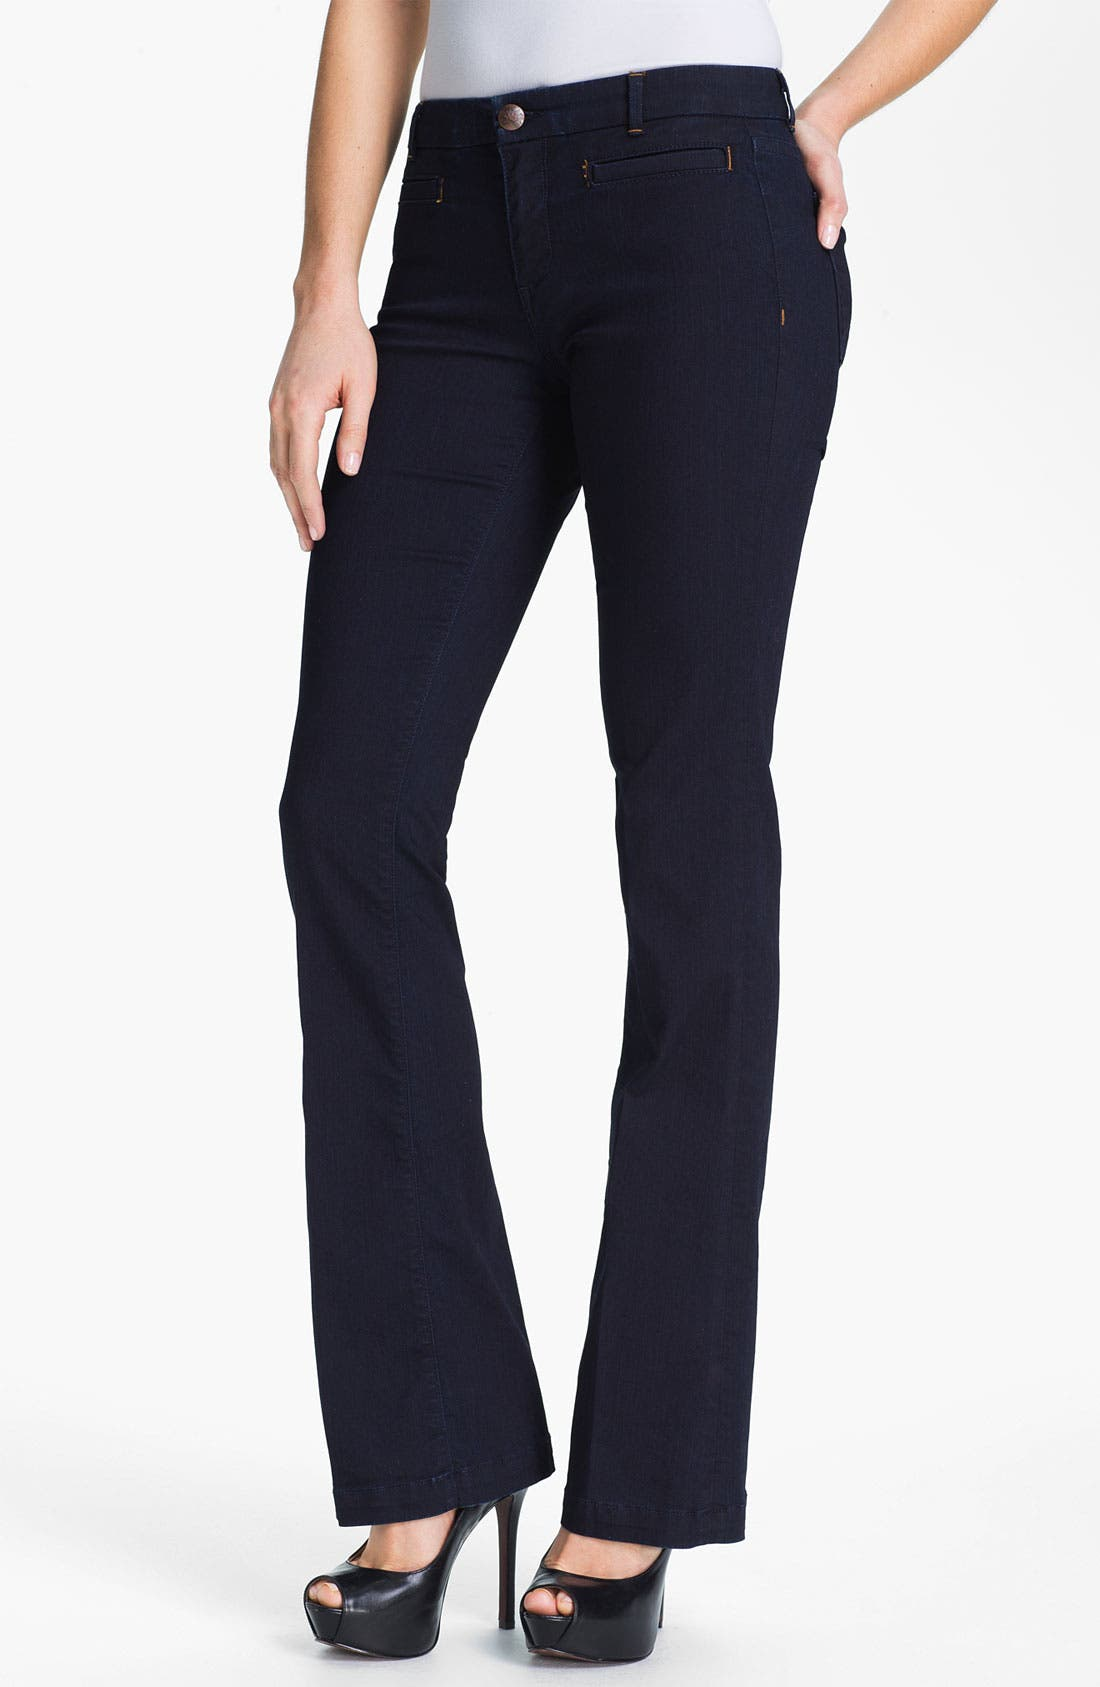 Main Image - Agave 'Fortuna' Trouser Jeans (Lookout) (Online Exclusive)